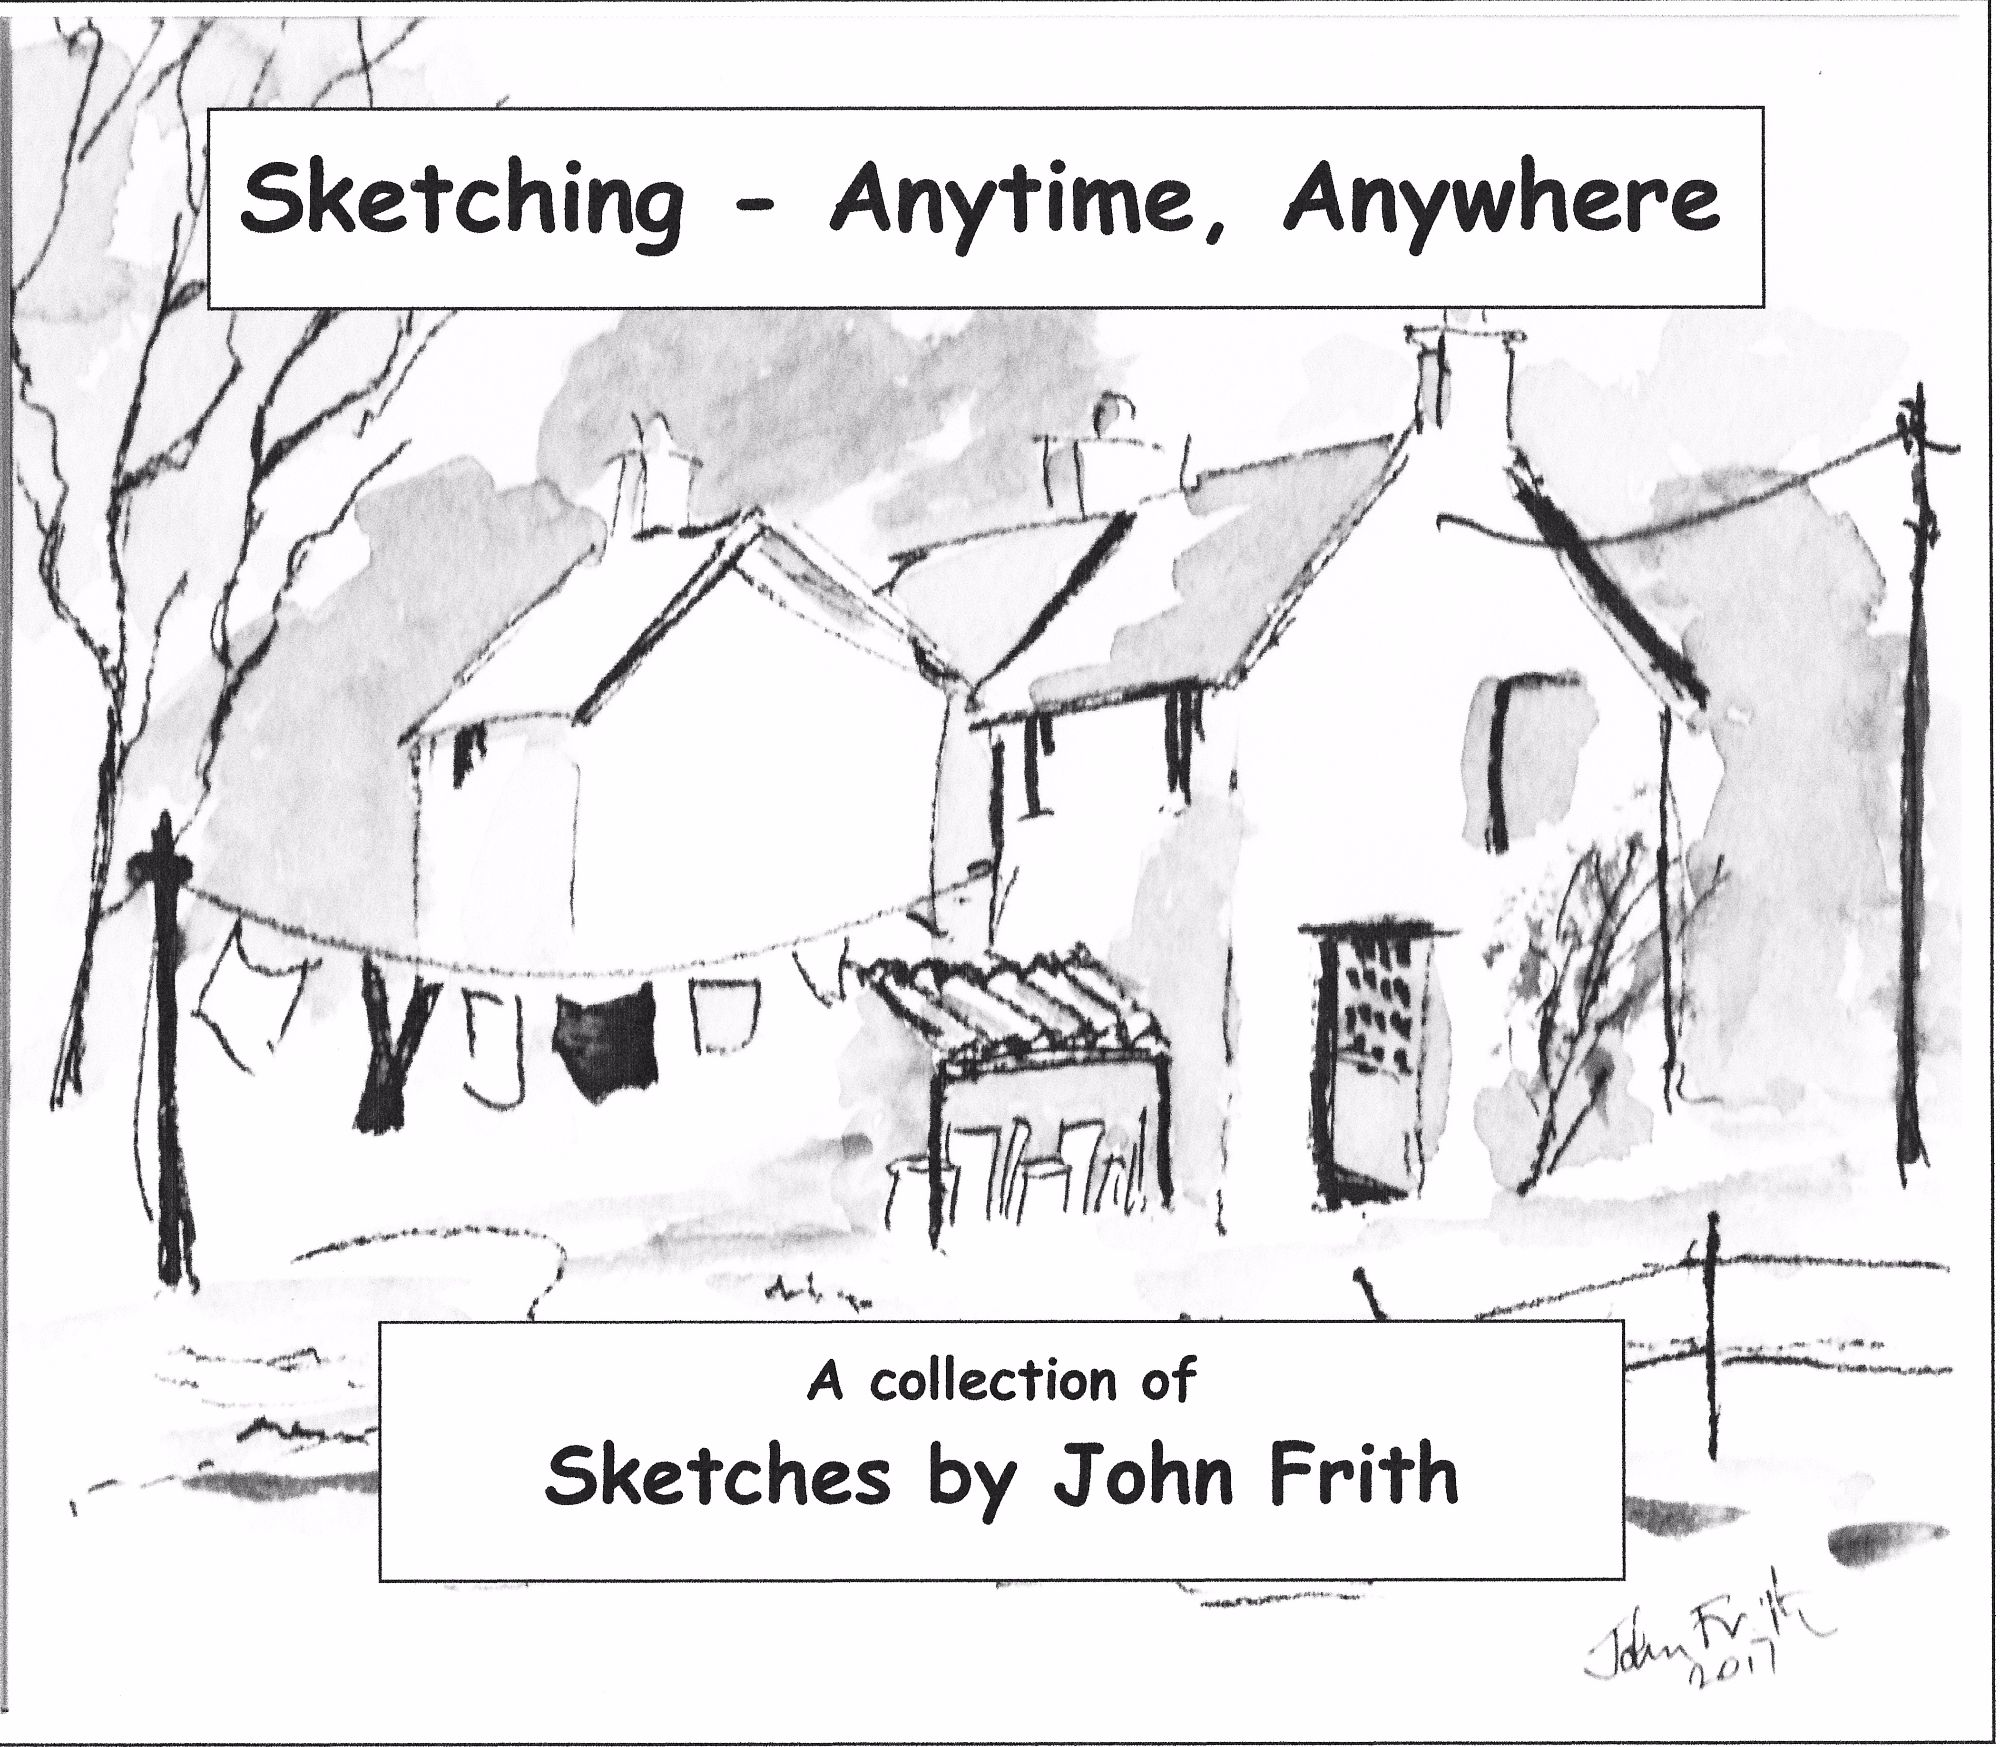 Sketching - Anytime, Anywhere